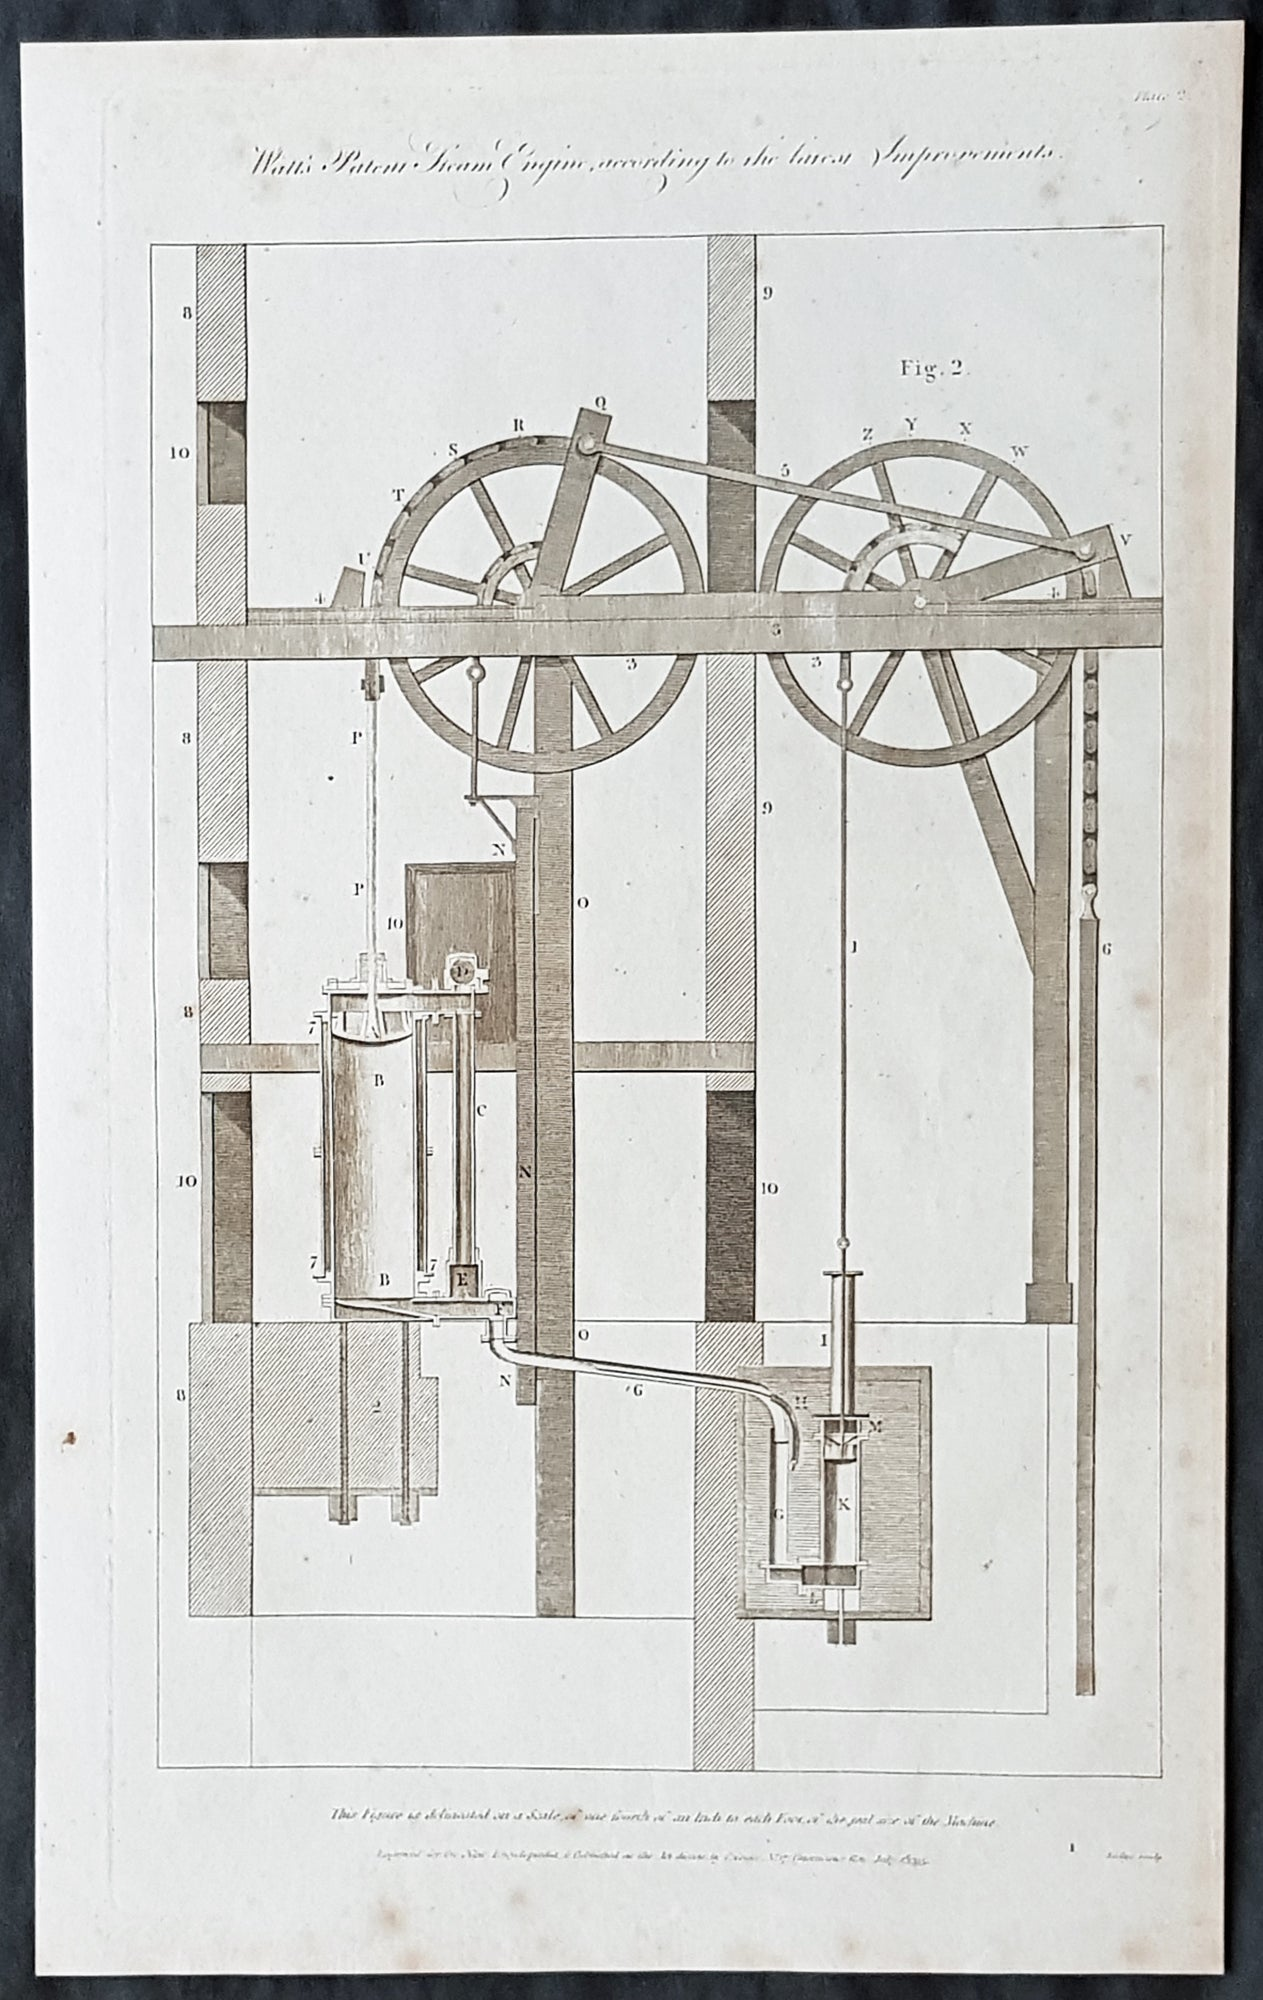 1795 William Hall Antique Print Diagram of The Watts Steam Engine in 1795